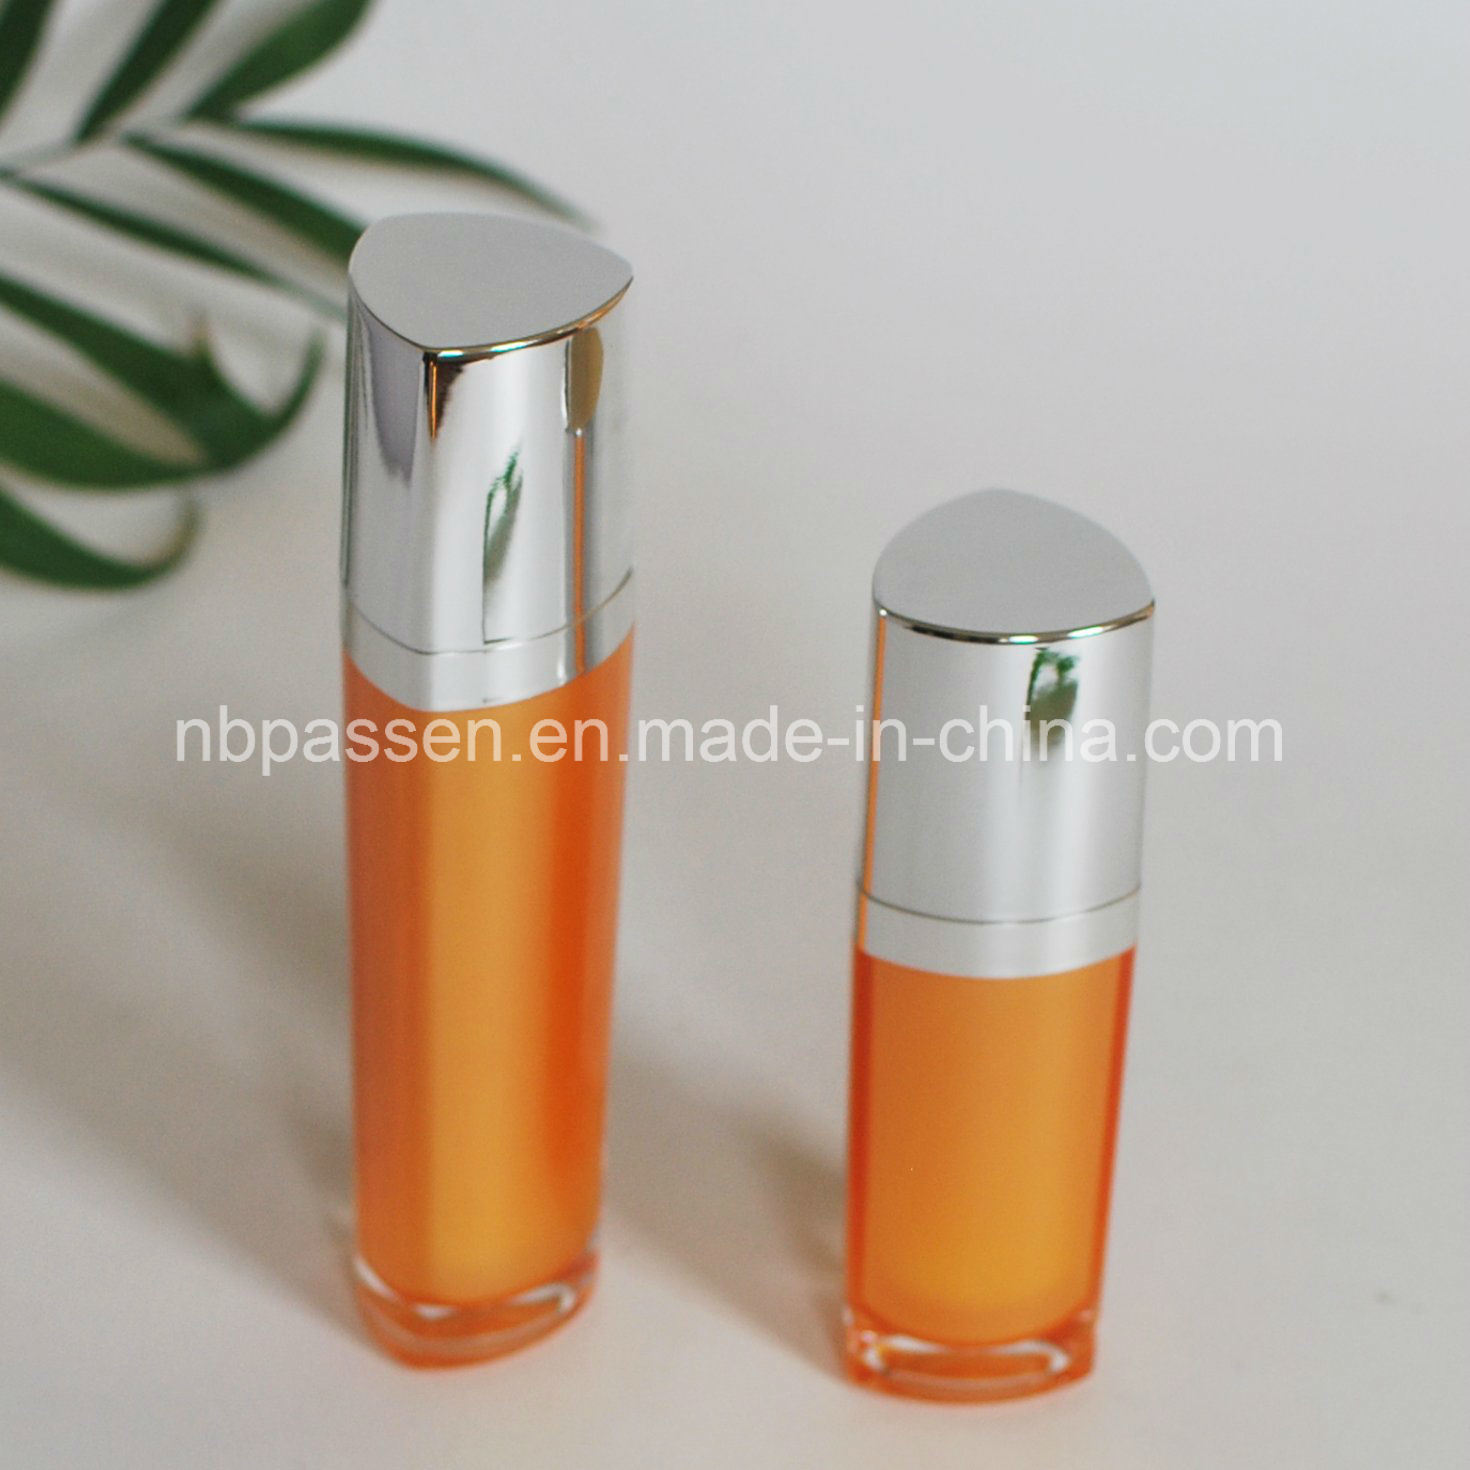 15/50ml Orange Acrylic Bottle with Lotion Pump for Cosmetics (PPC-NEW-095)